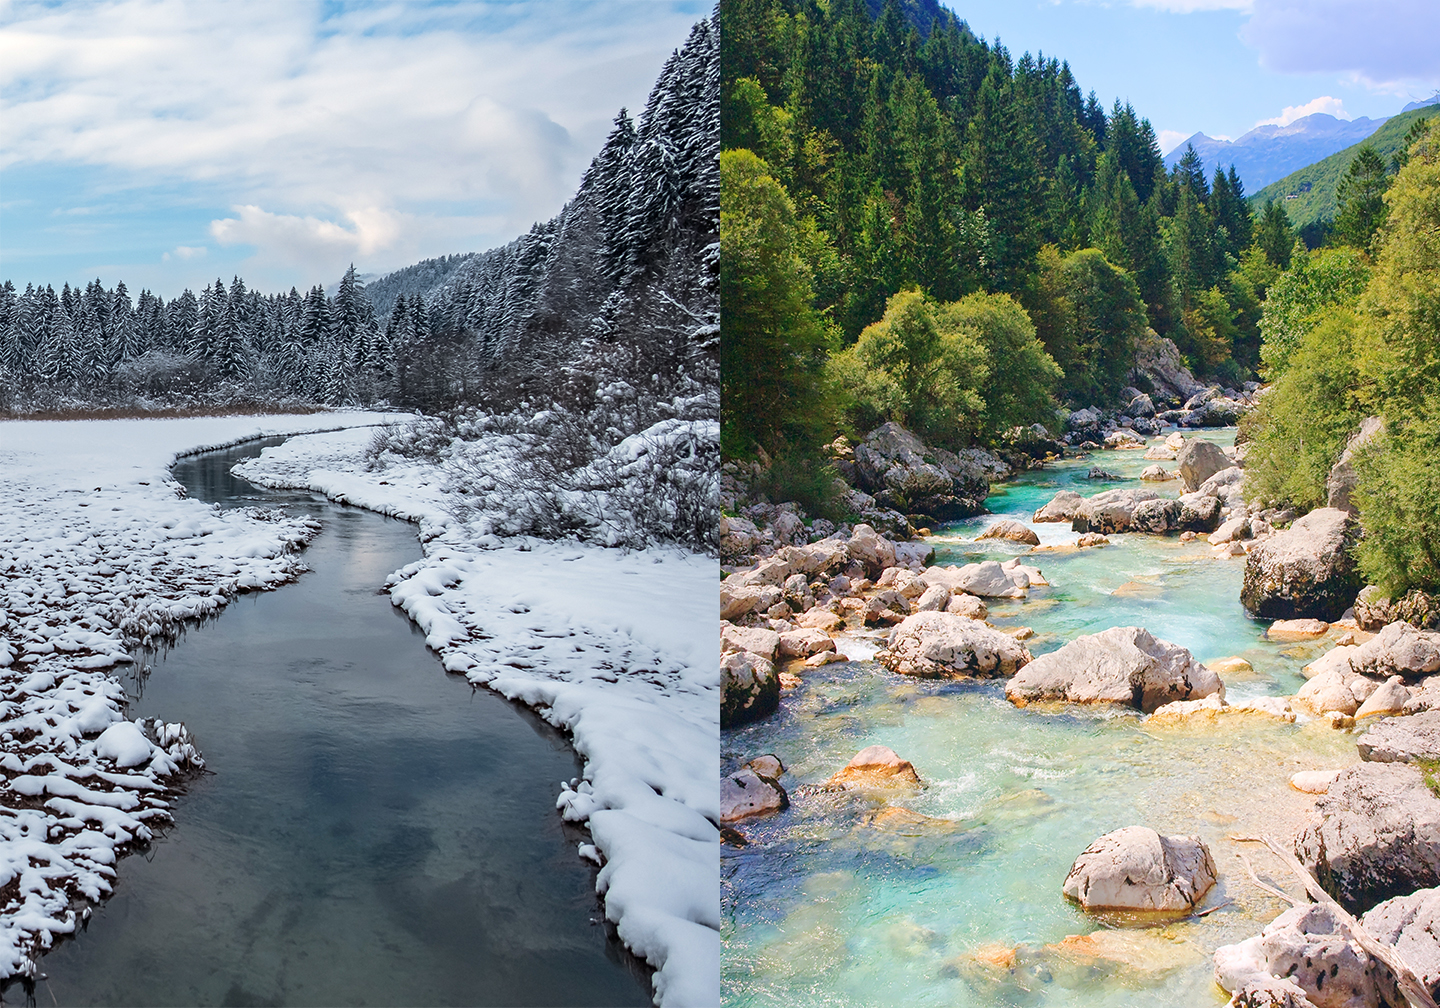 A snowy winter river scene next to a sunny summer river scene, with trees from both scenes meeting at the top.